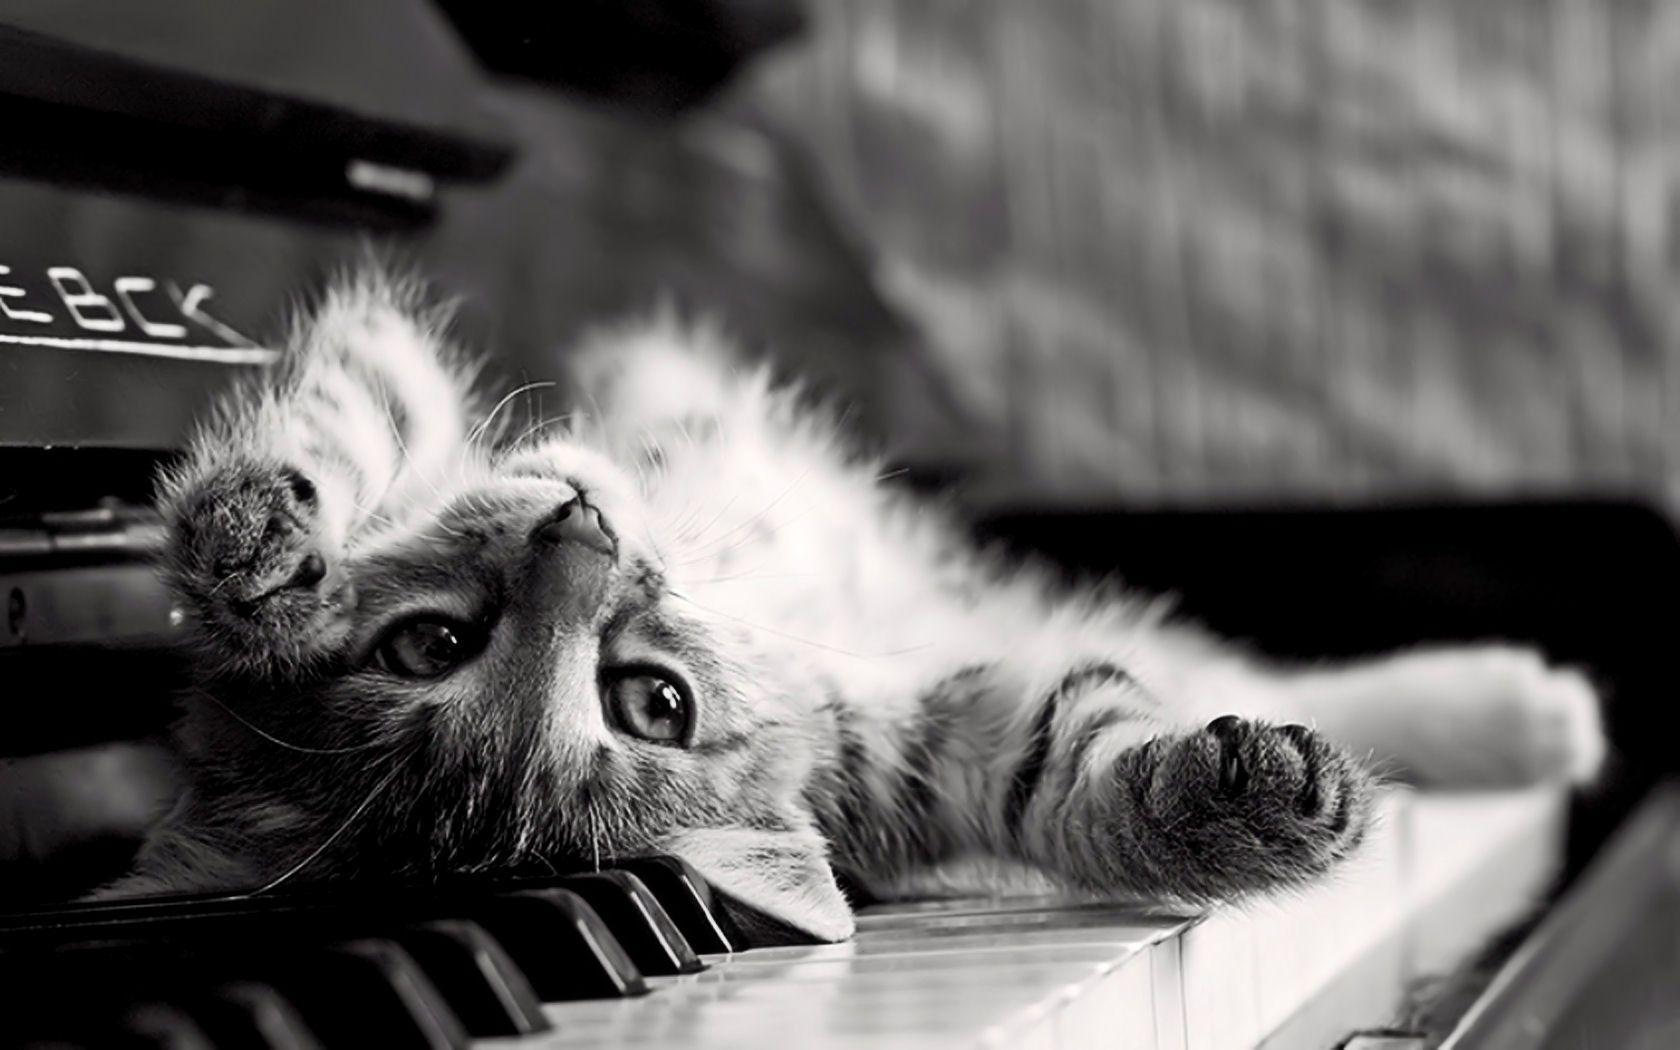 Cute Cat On The Piano Desktop Wallpaper | Magnificent Backgrounds